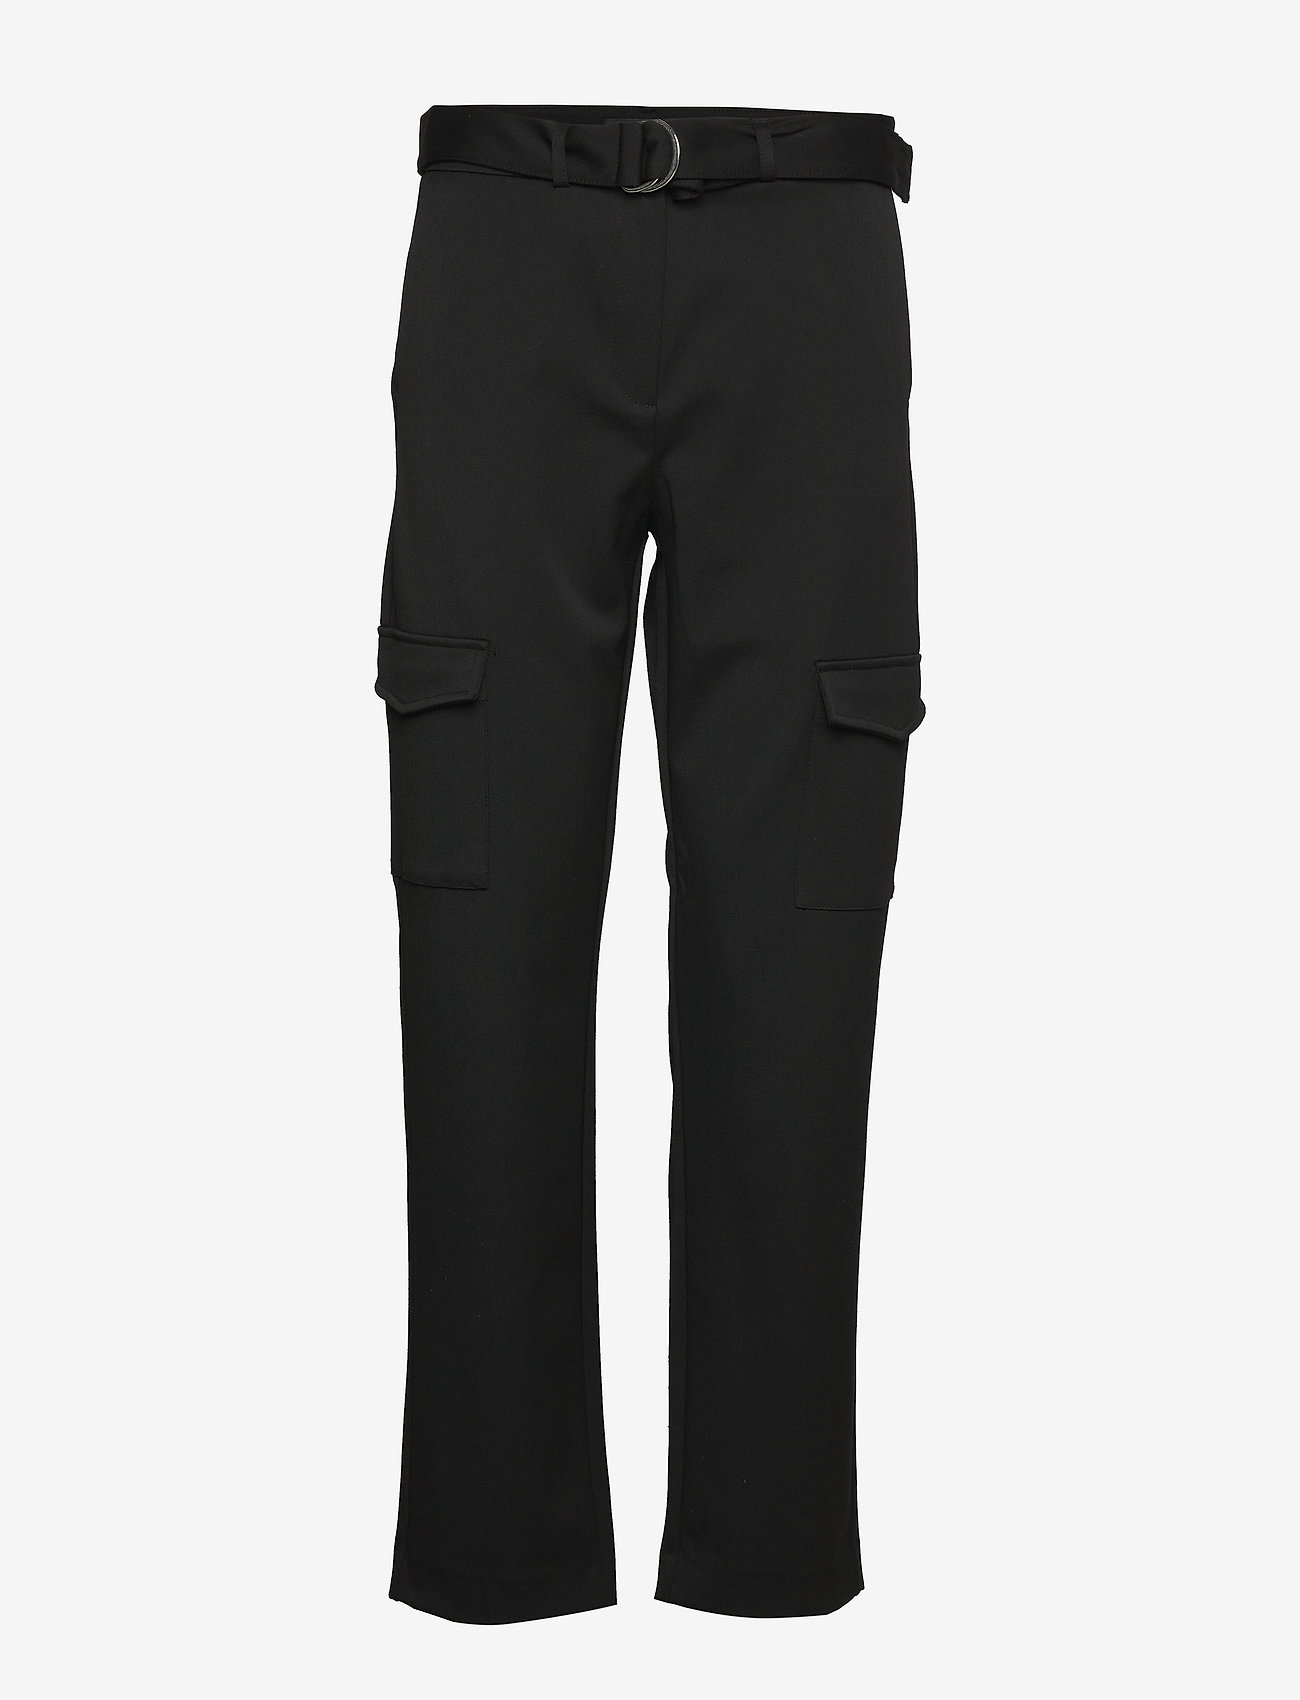 Selected Femme - SLFWILMA HW PANT EX - straight leg trousers - black - 0